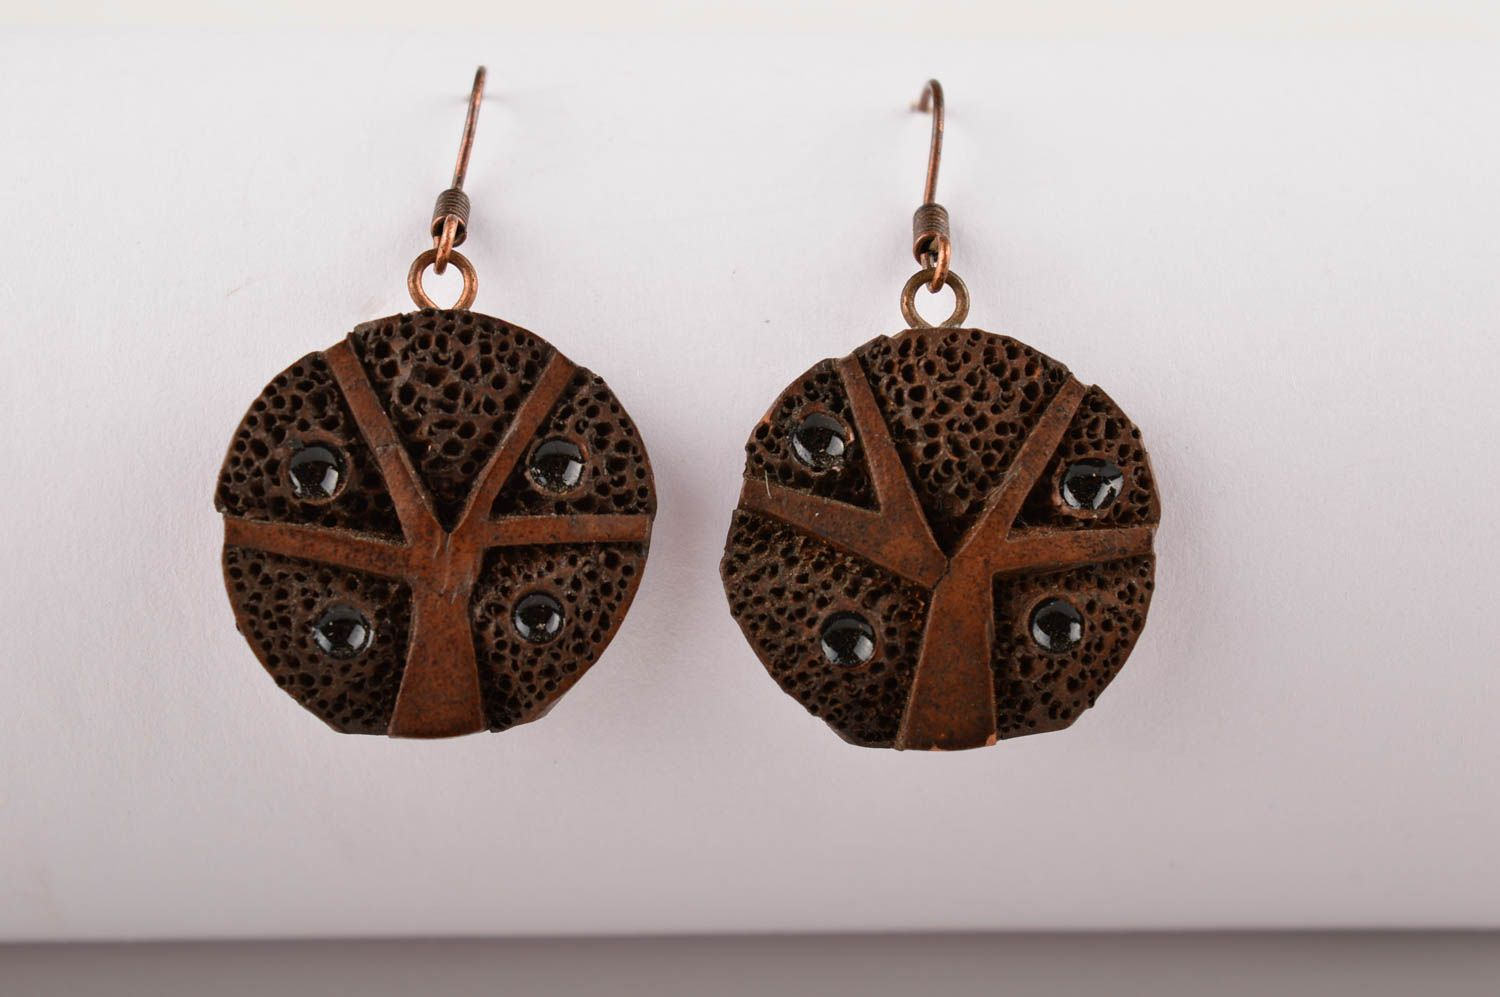 Ceramic jewelry handmade earrings gifts for women fashion accessories photo 2